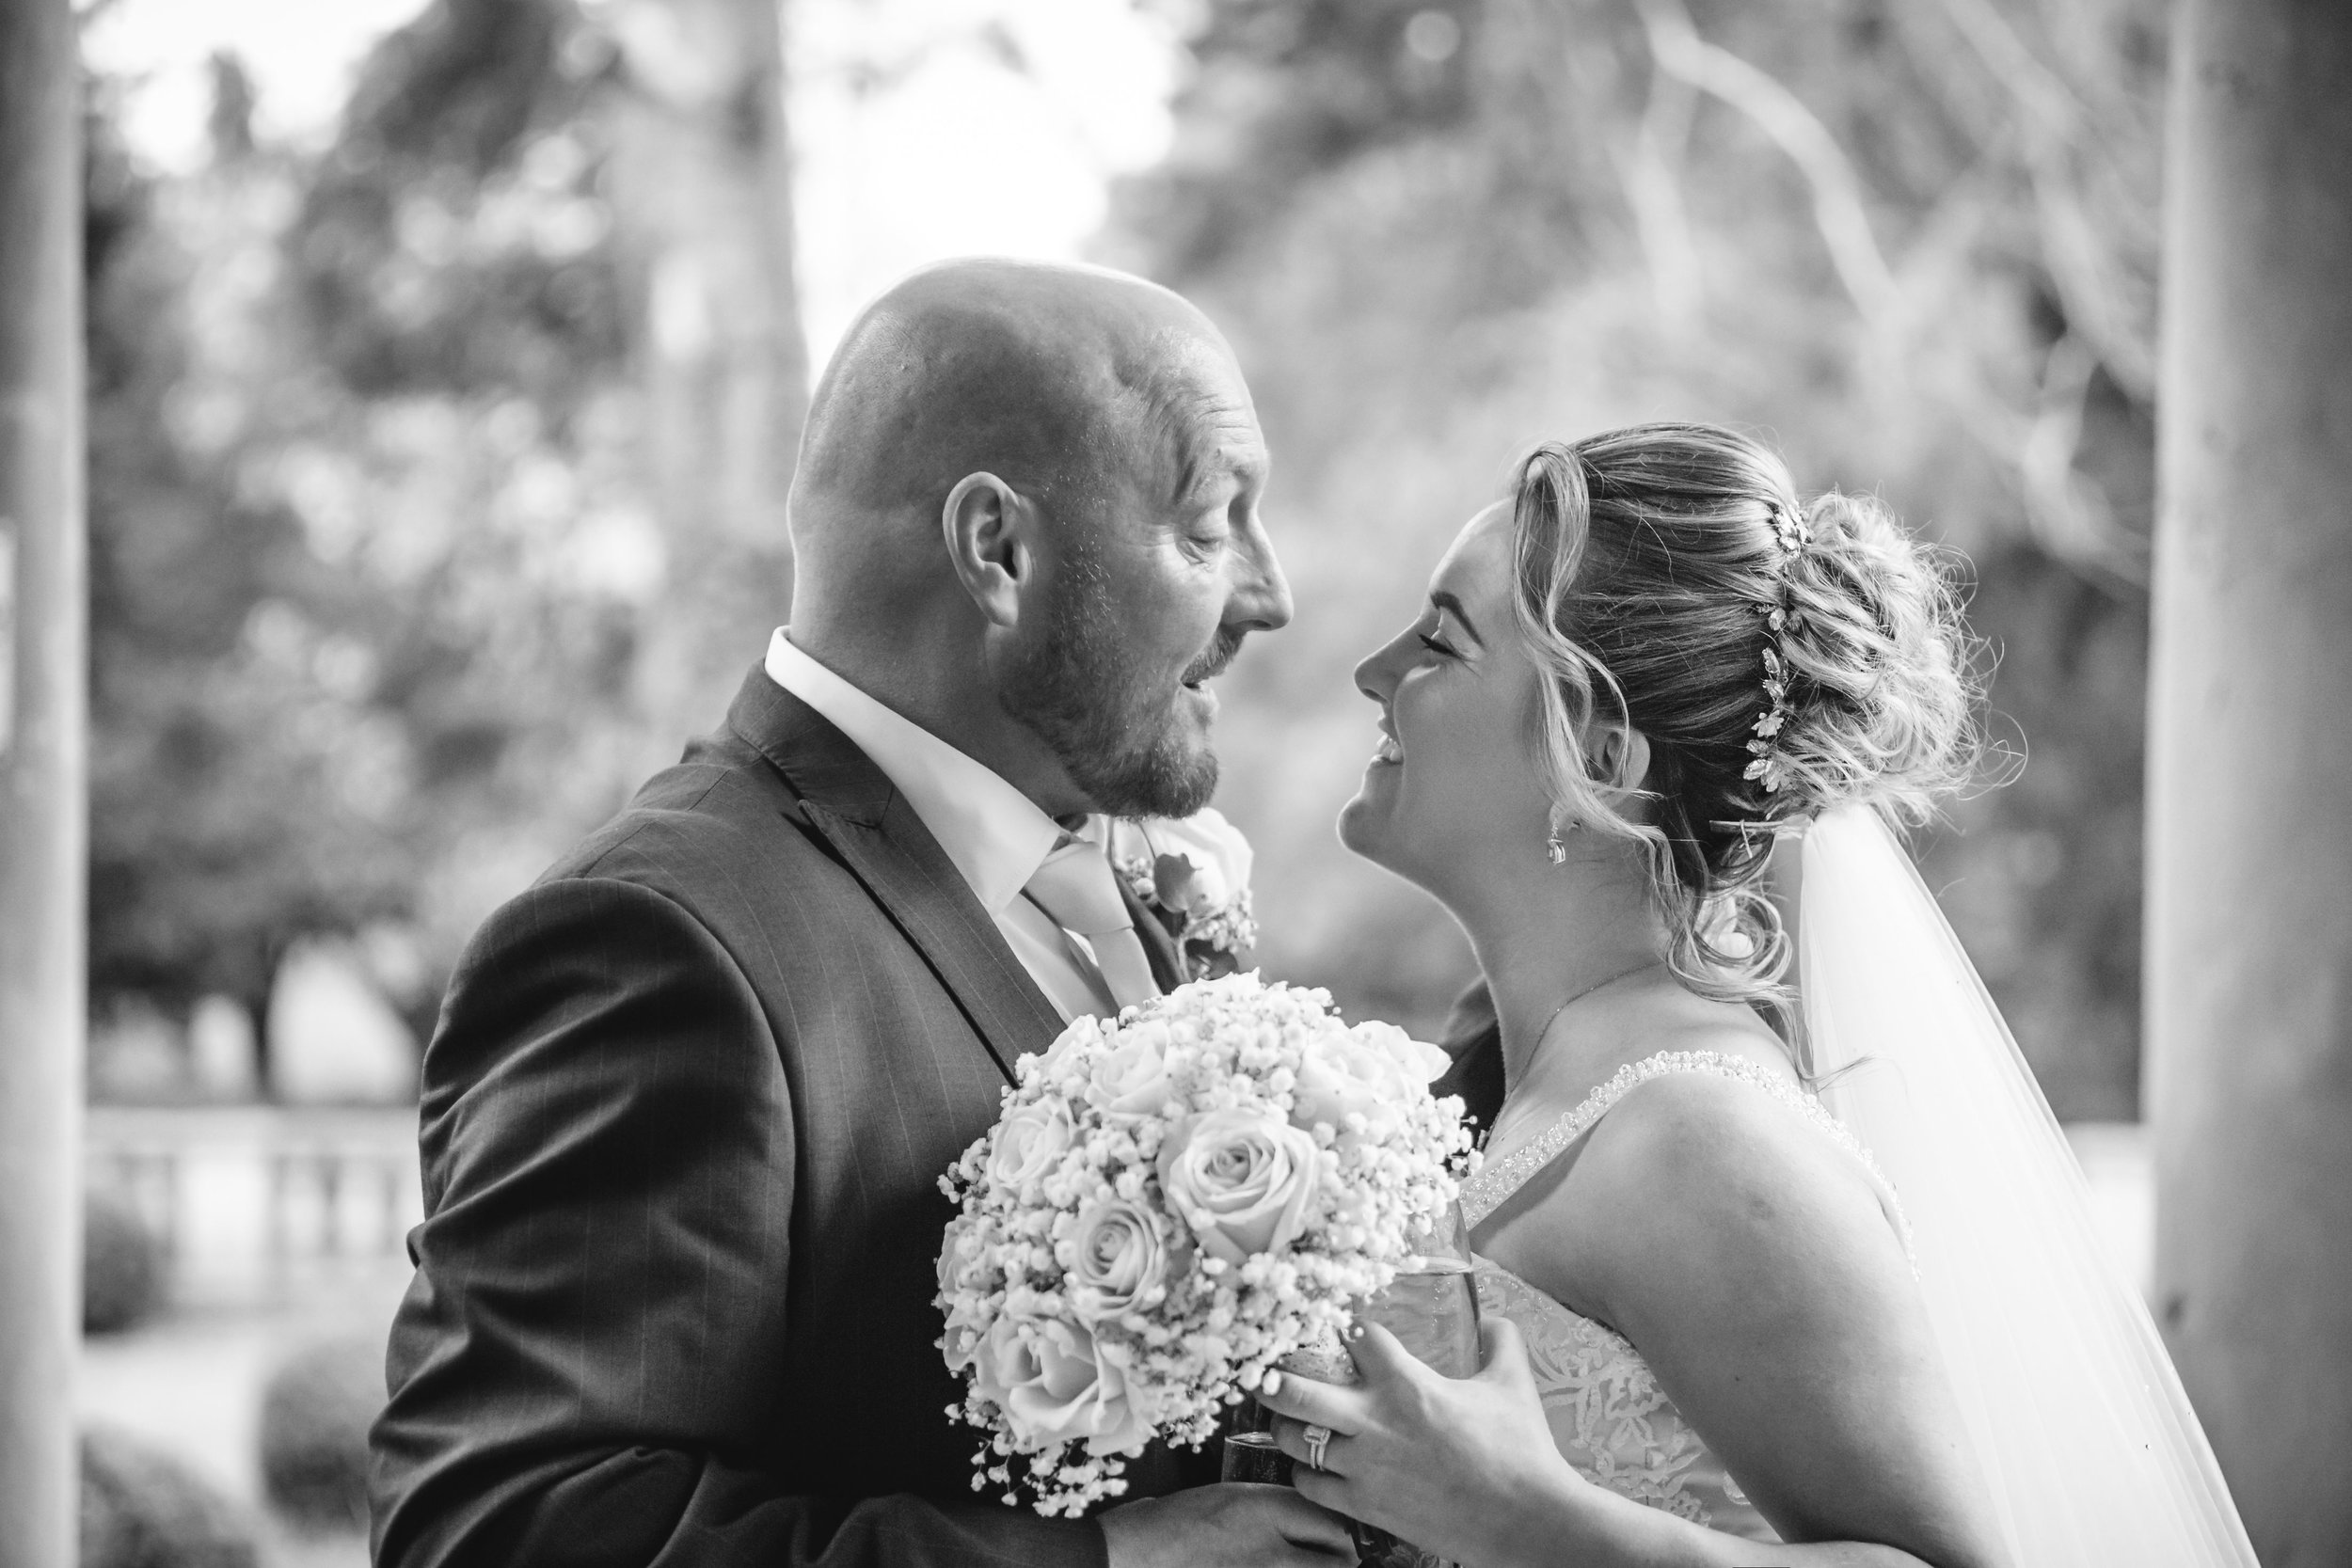 To view more photographs from this wedding at Kilworth House,  click here .